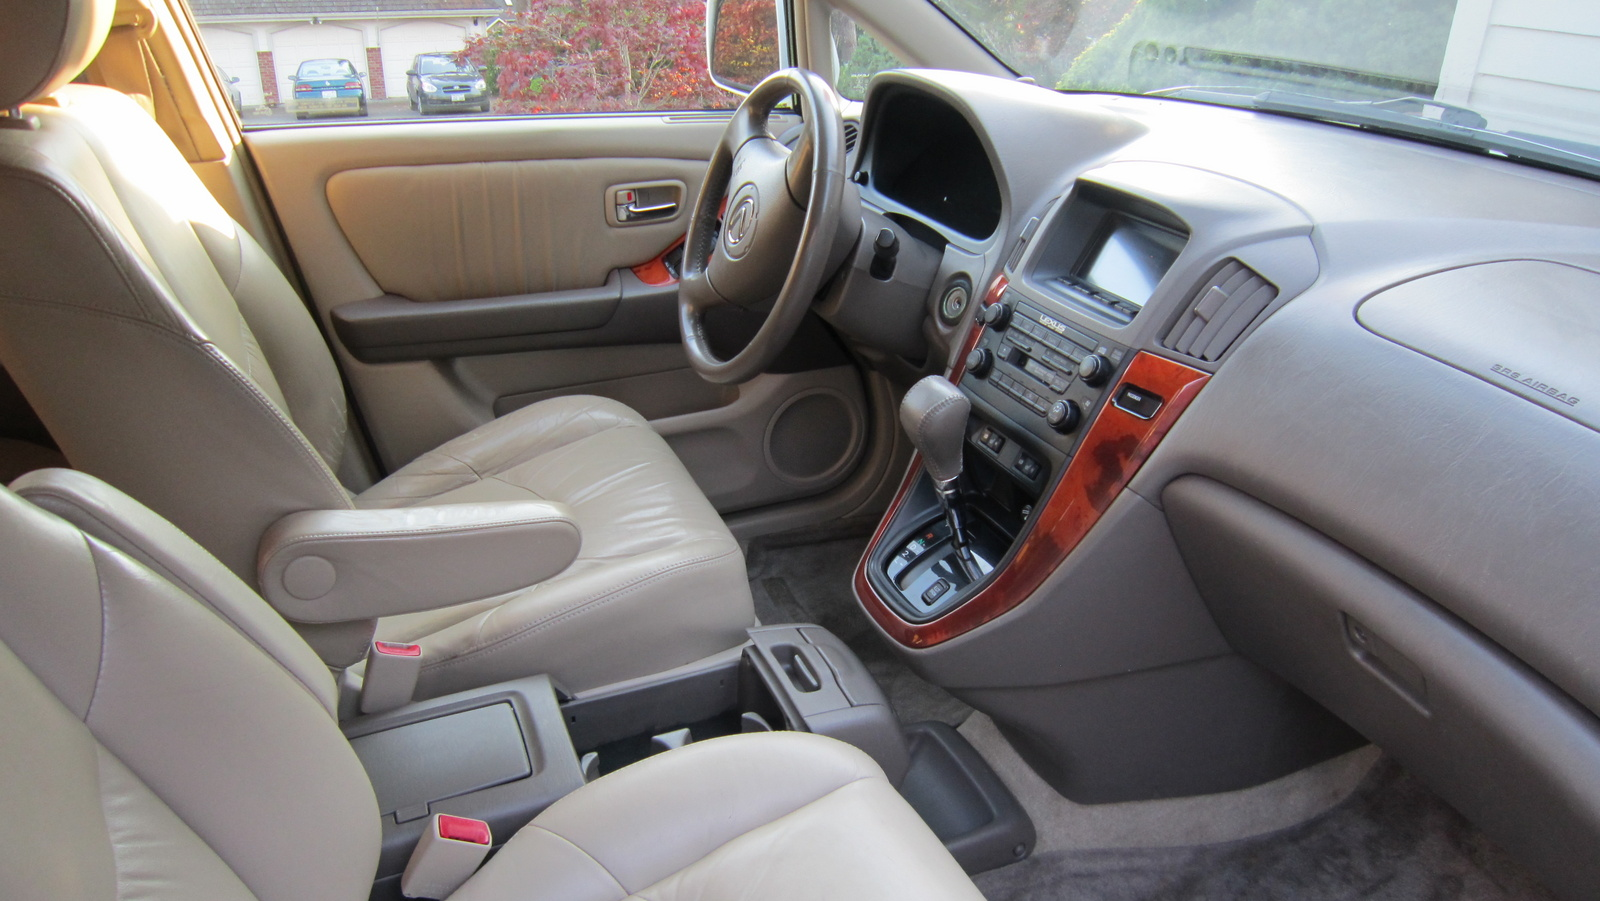 2001 lexus rx 300 interior pictures cargurus. Black Bedroom Furniture Sets. Home Design Ideas